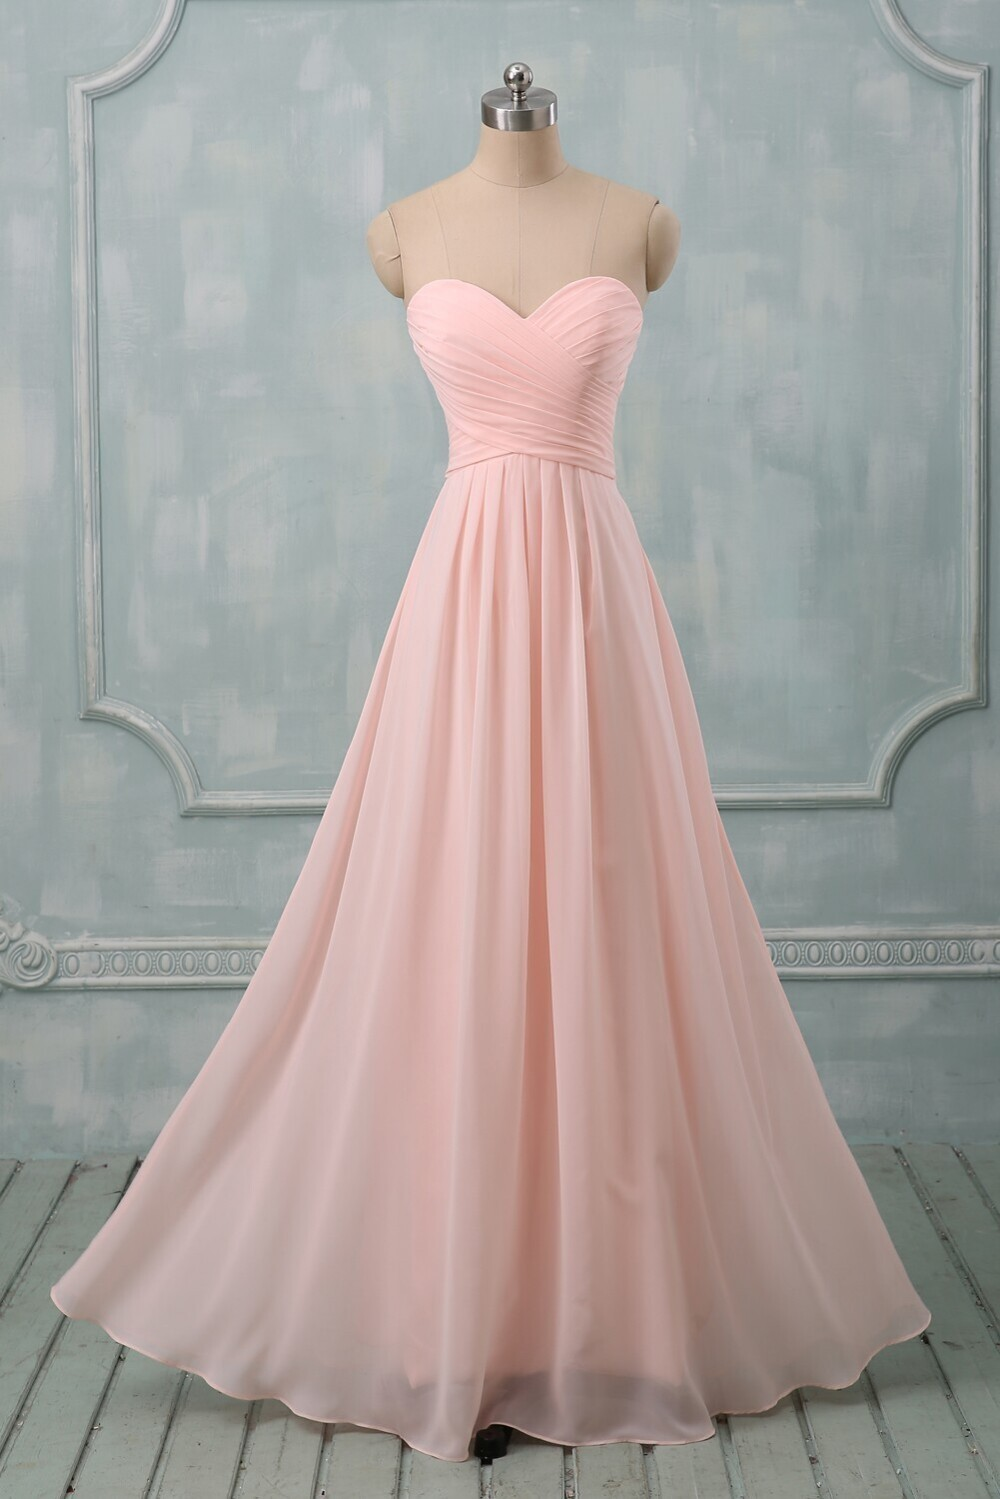 Free shipping pastel colors bridesmaid dresses to wedding party free shipping pastel colors bridesmaid dresses to wedding party long a line sweetheart chiffon formal dress vestidos in bridesmaid dresses from weddings ombrellifo Image collections